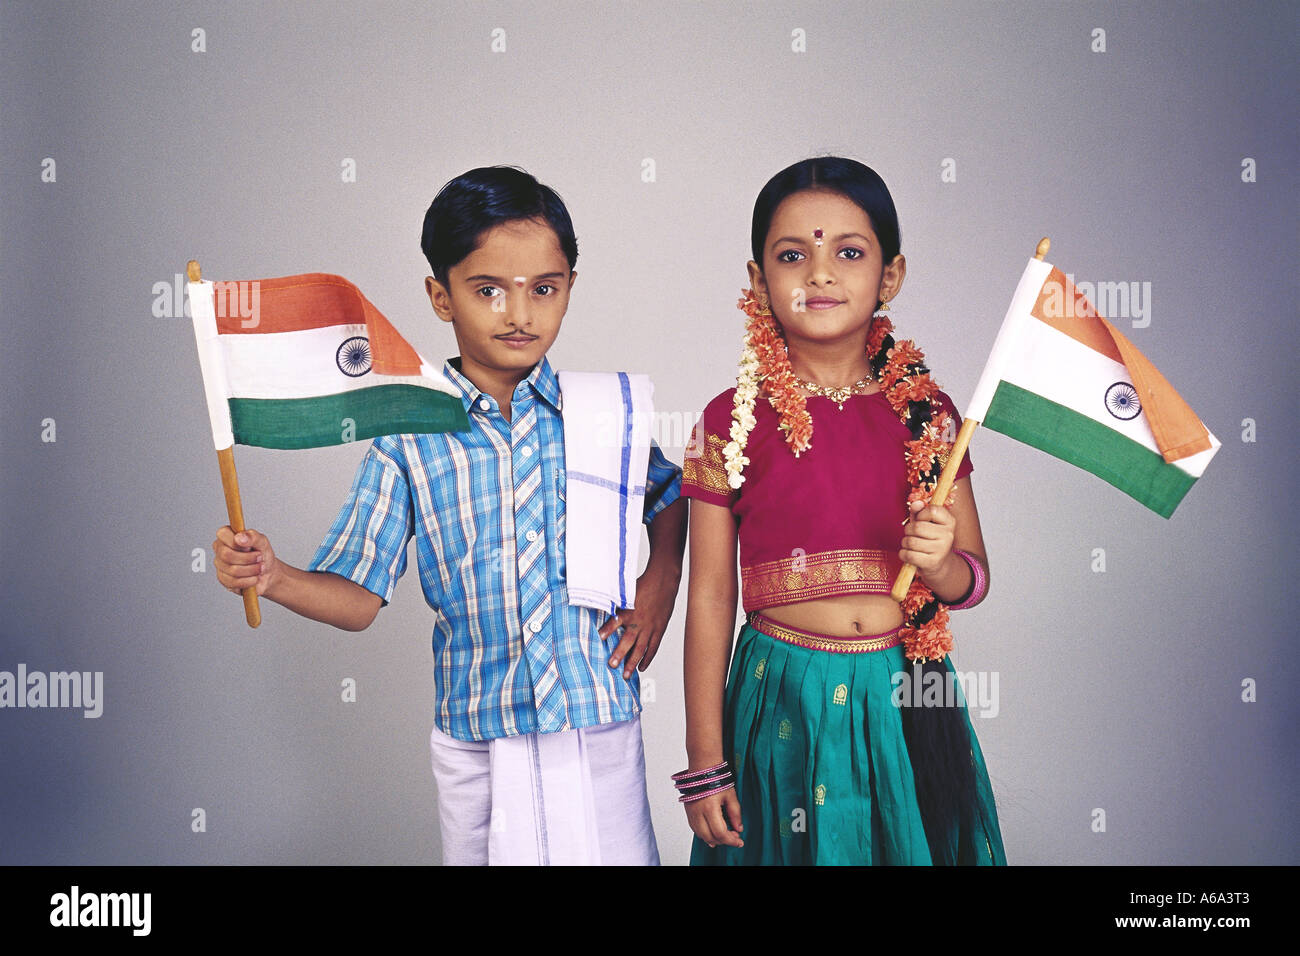 7612db774d South Indian boy girl wearing fancy dress traditional costume holding the  Indian Flag - Stock Image